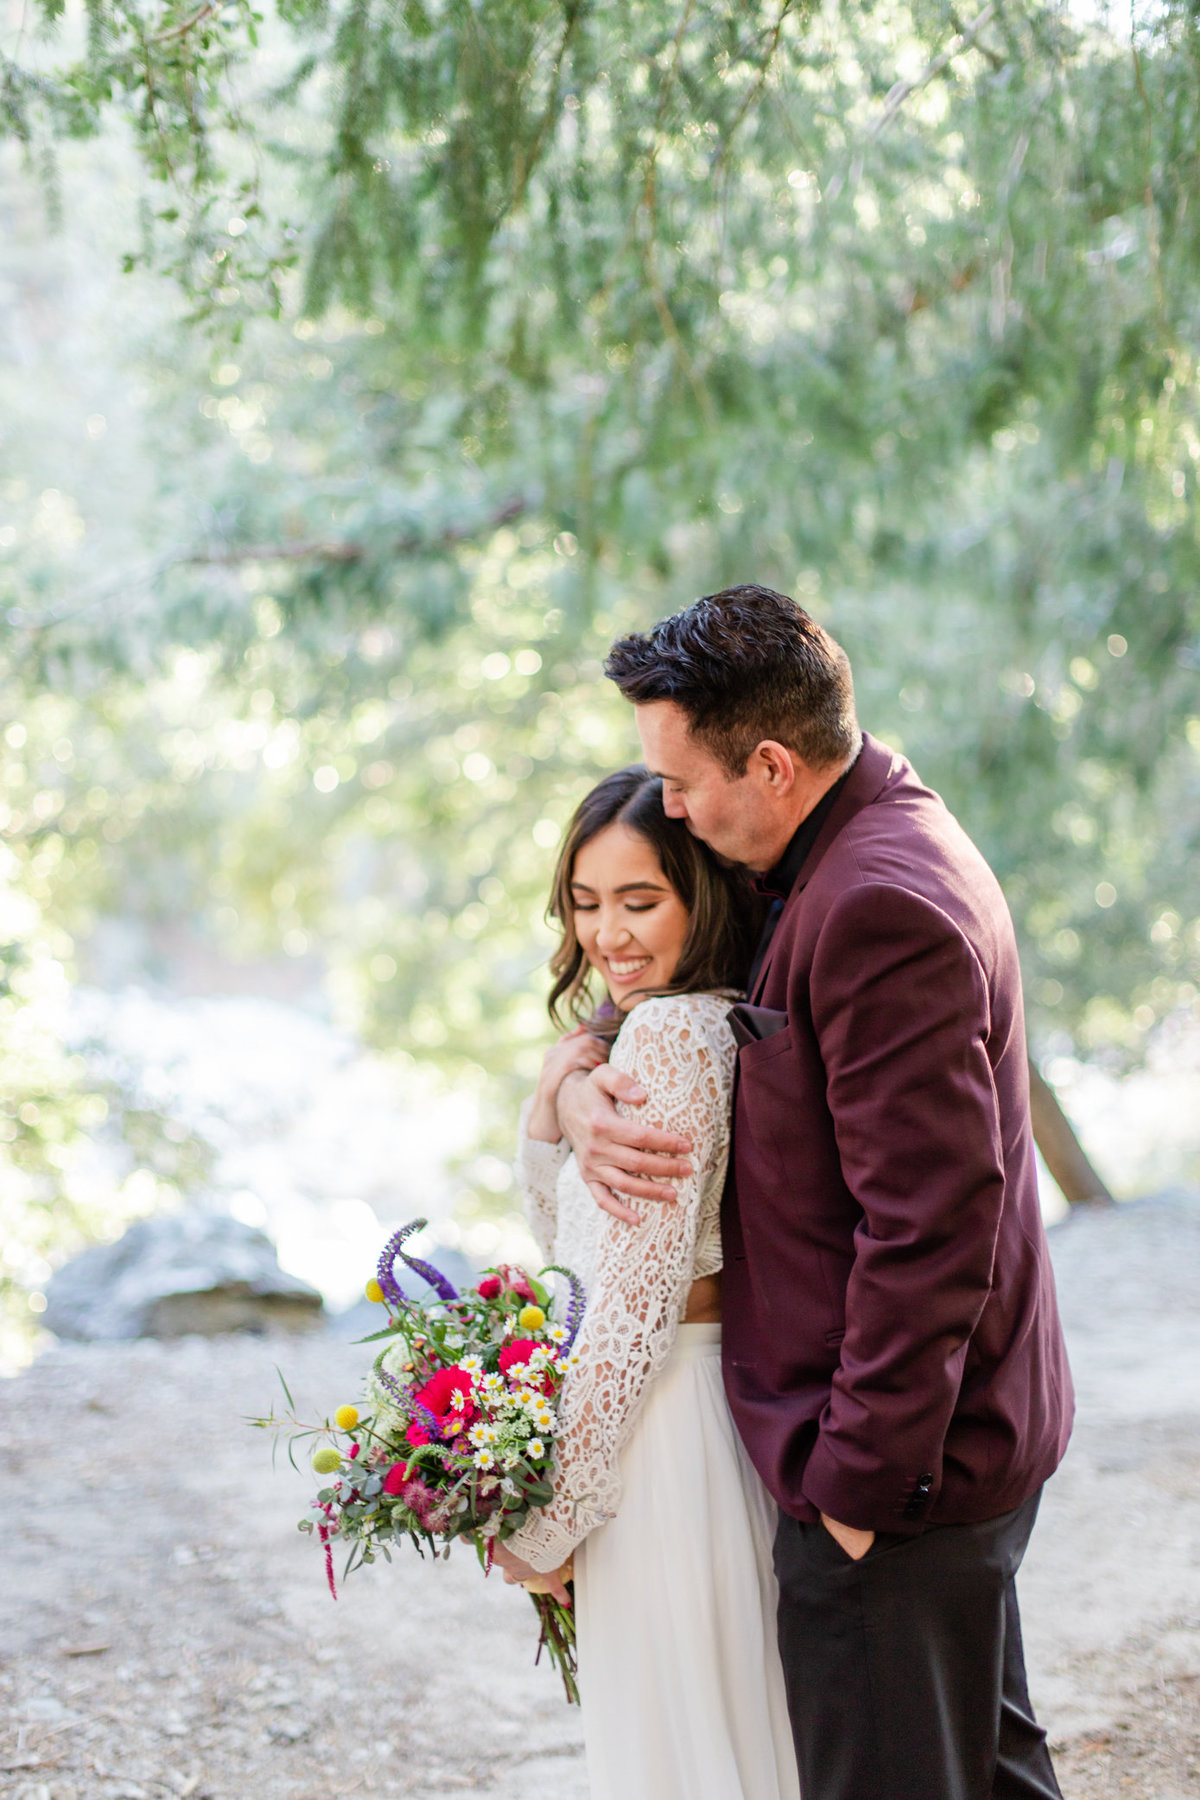 Mt. Baldy Elopement, Mt. Baldy Styled Shoot, Mt. Baldy Wedding, Forest Elopement, Forest Wedding, Boho Wedding, Boho Elopement, Mt. Baldy Boho, Forest Boho, Woodland Boho-32